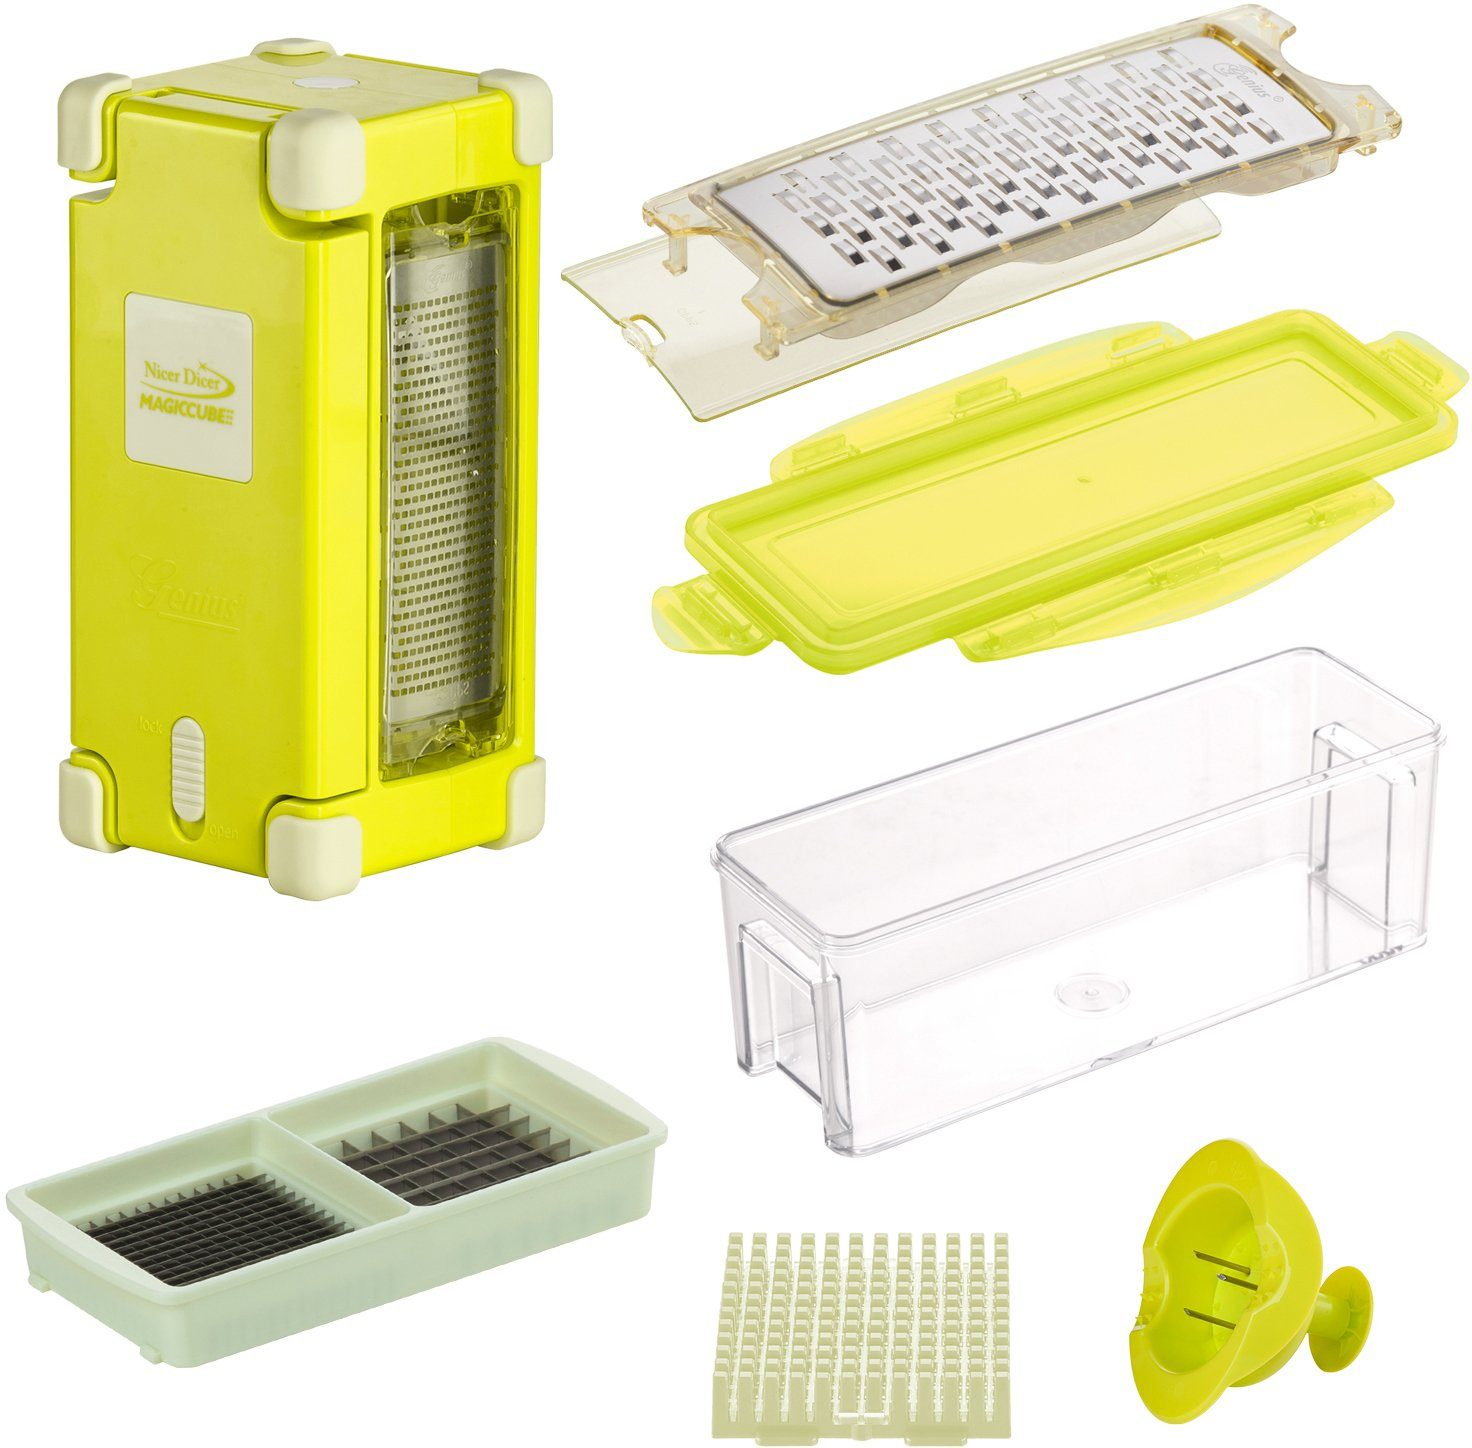 Genius Nicer Dicer Magic Cube Gourmet, 9-teilig, 350 ml